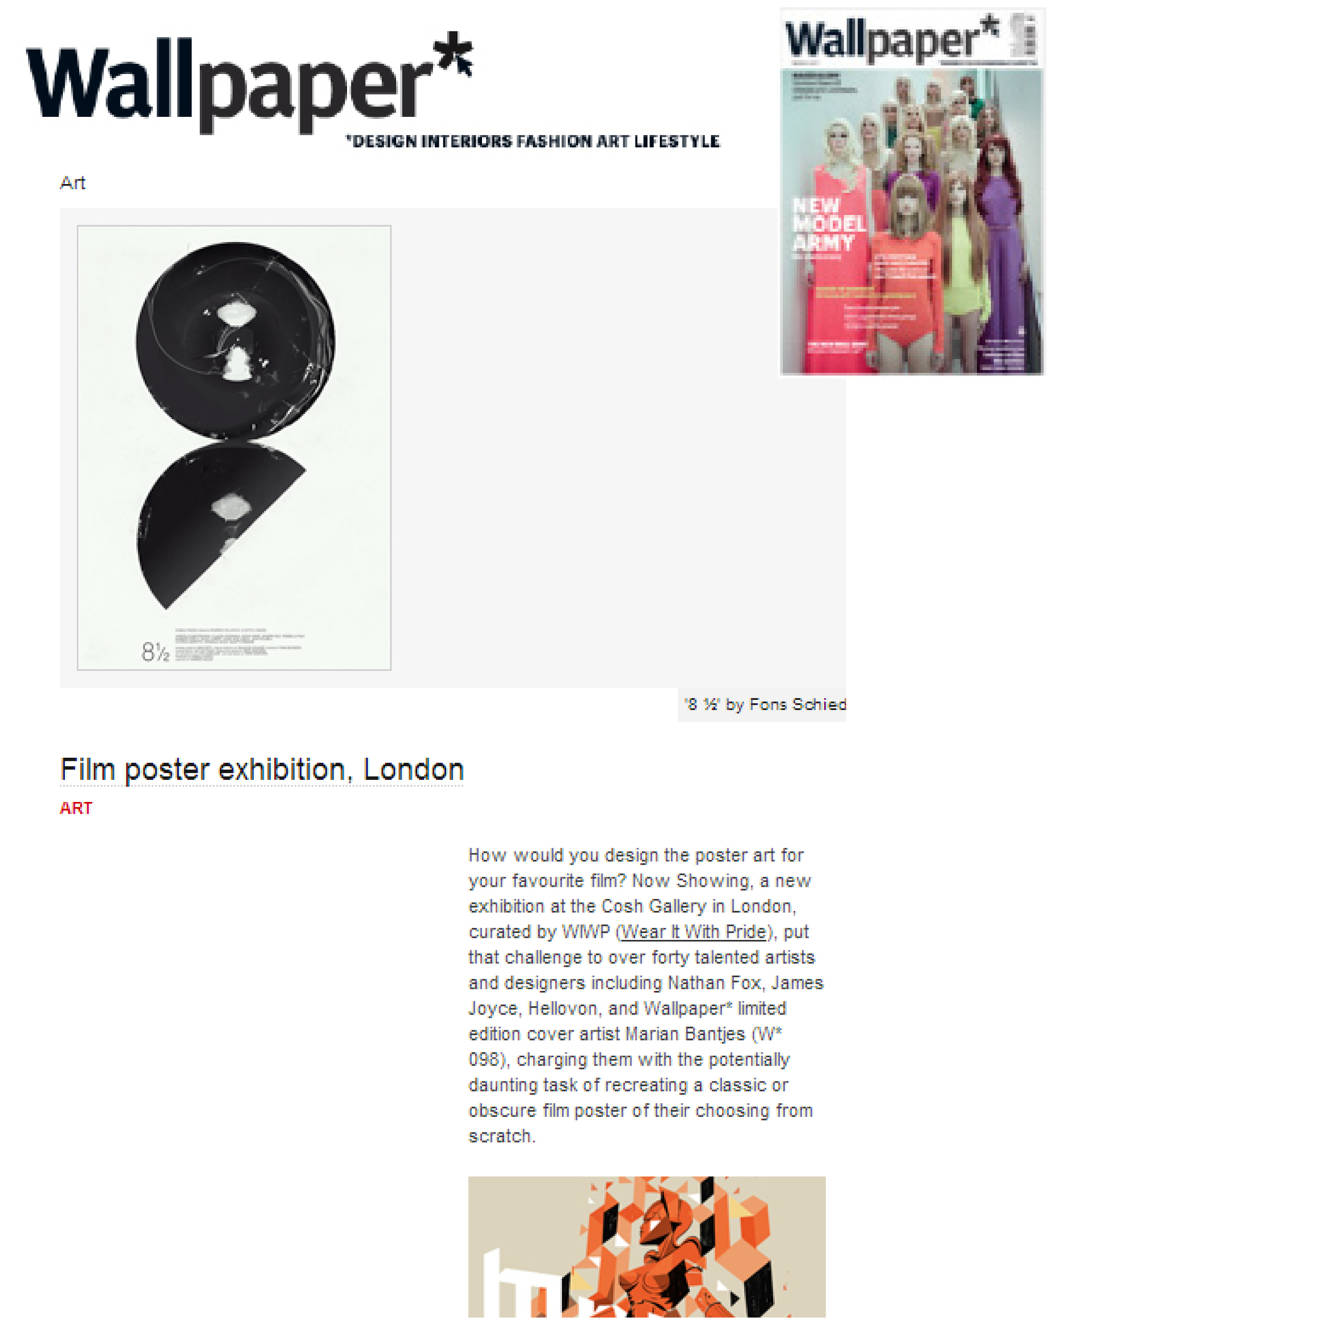 Wallpaper_NowShowing_March2011_2x.jpg